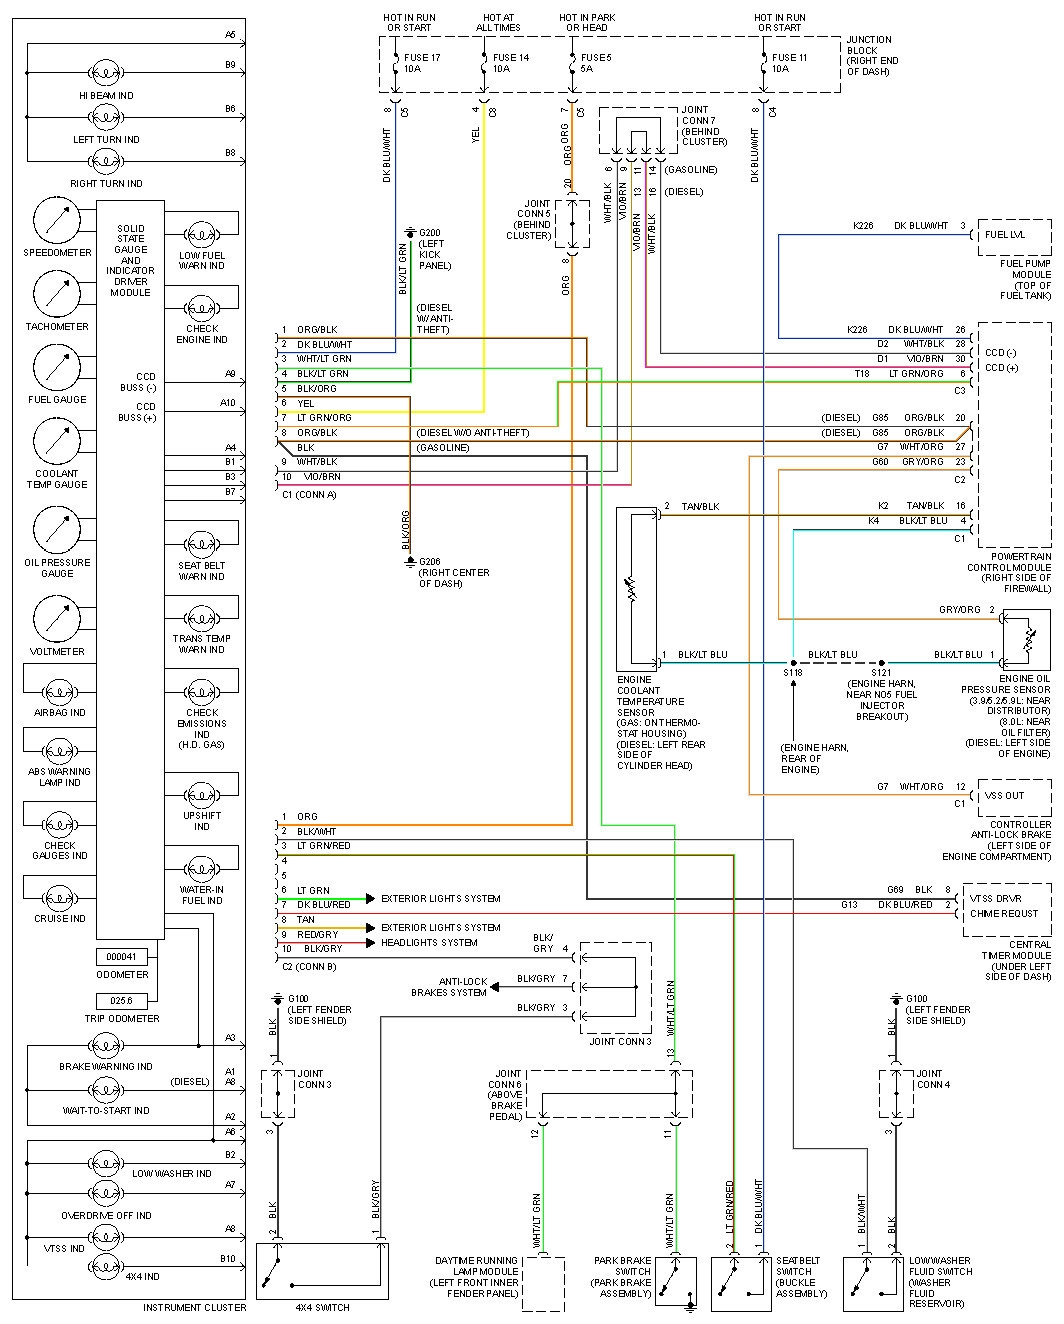 Wiring Diagram In Addition 2002 Suzuki Xl7 Fuse Box Diagram On T190